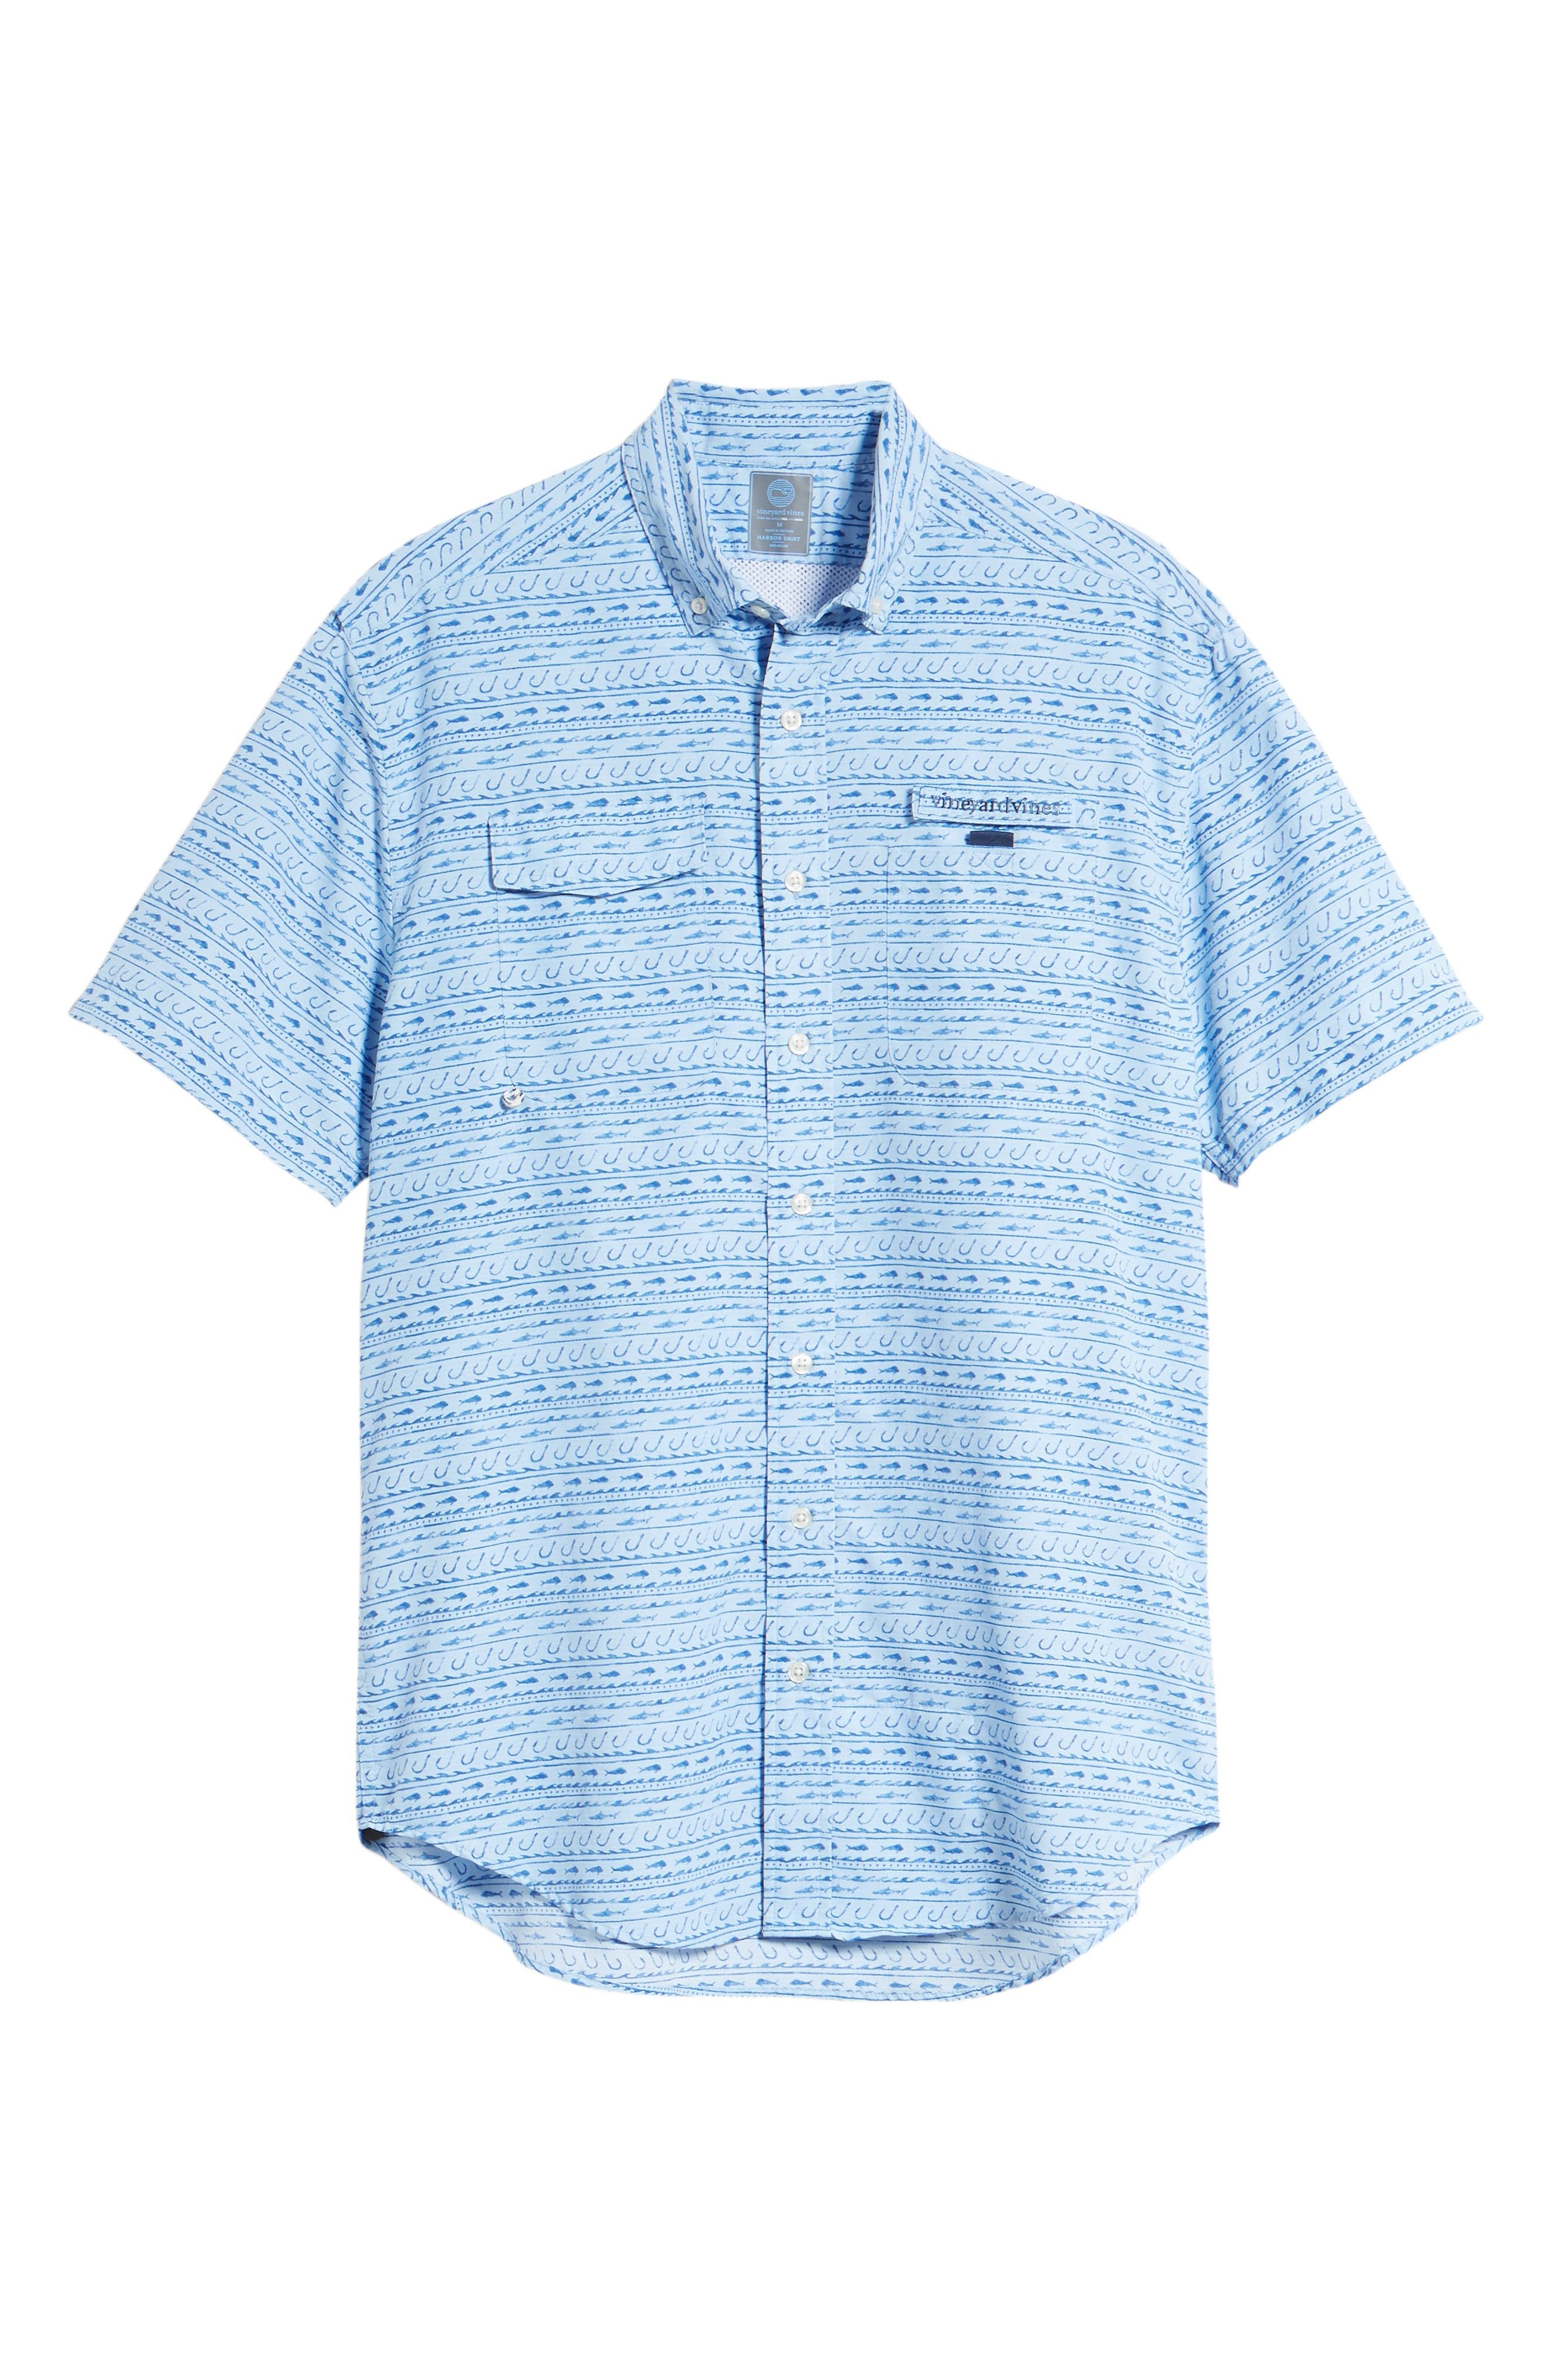 Fish Hook Wave Harbor Shirt,                             Alternate thumbnail 6, color,                             Basin Blue